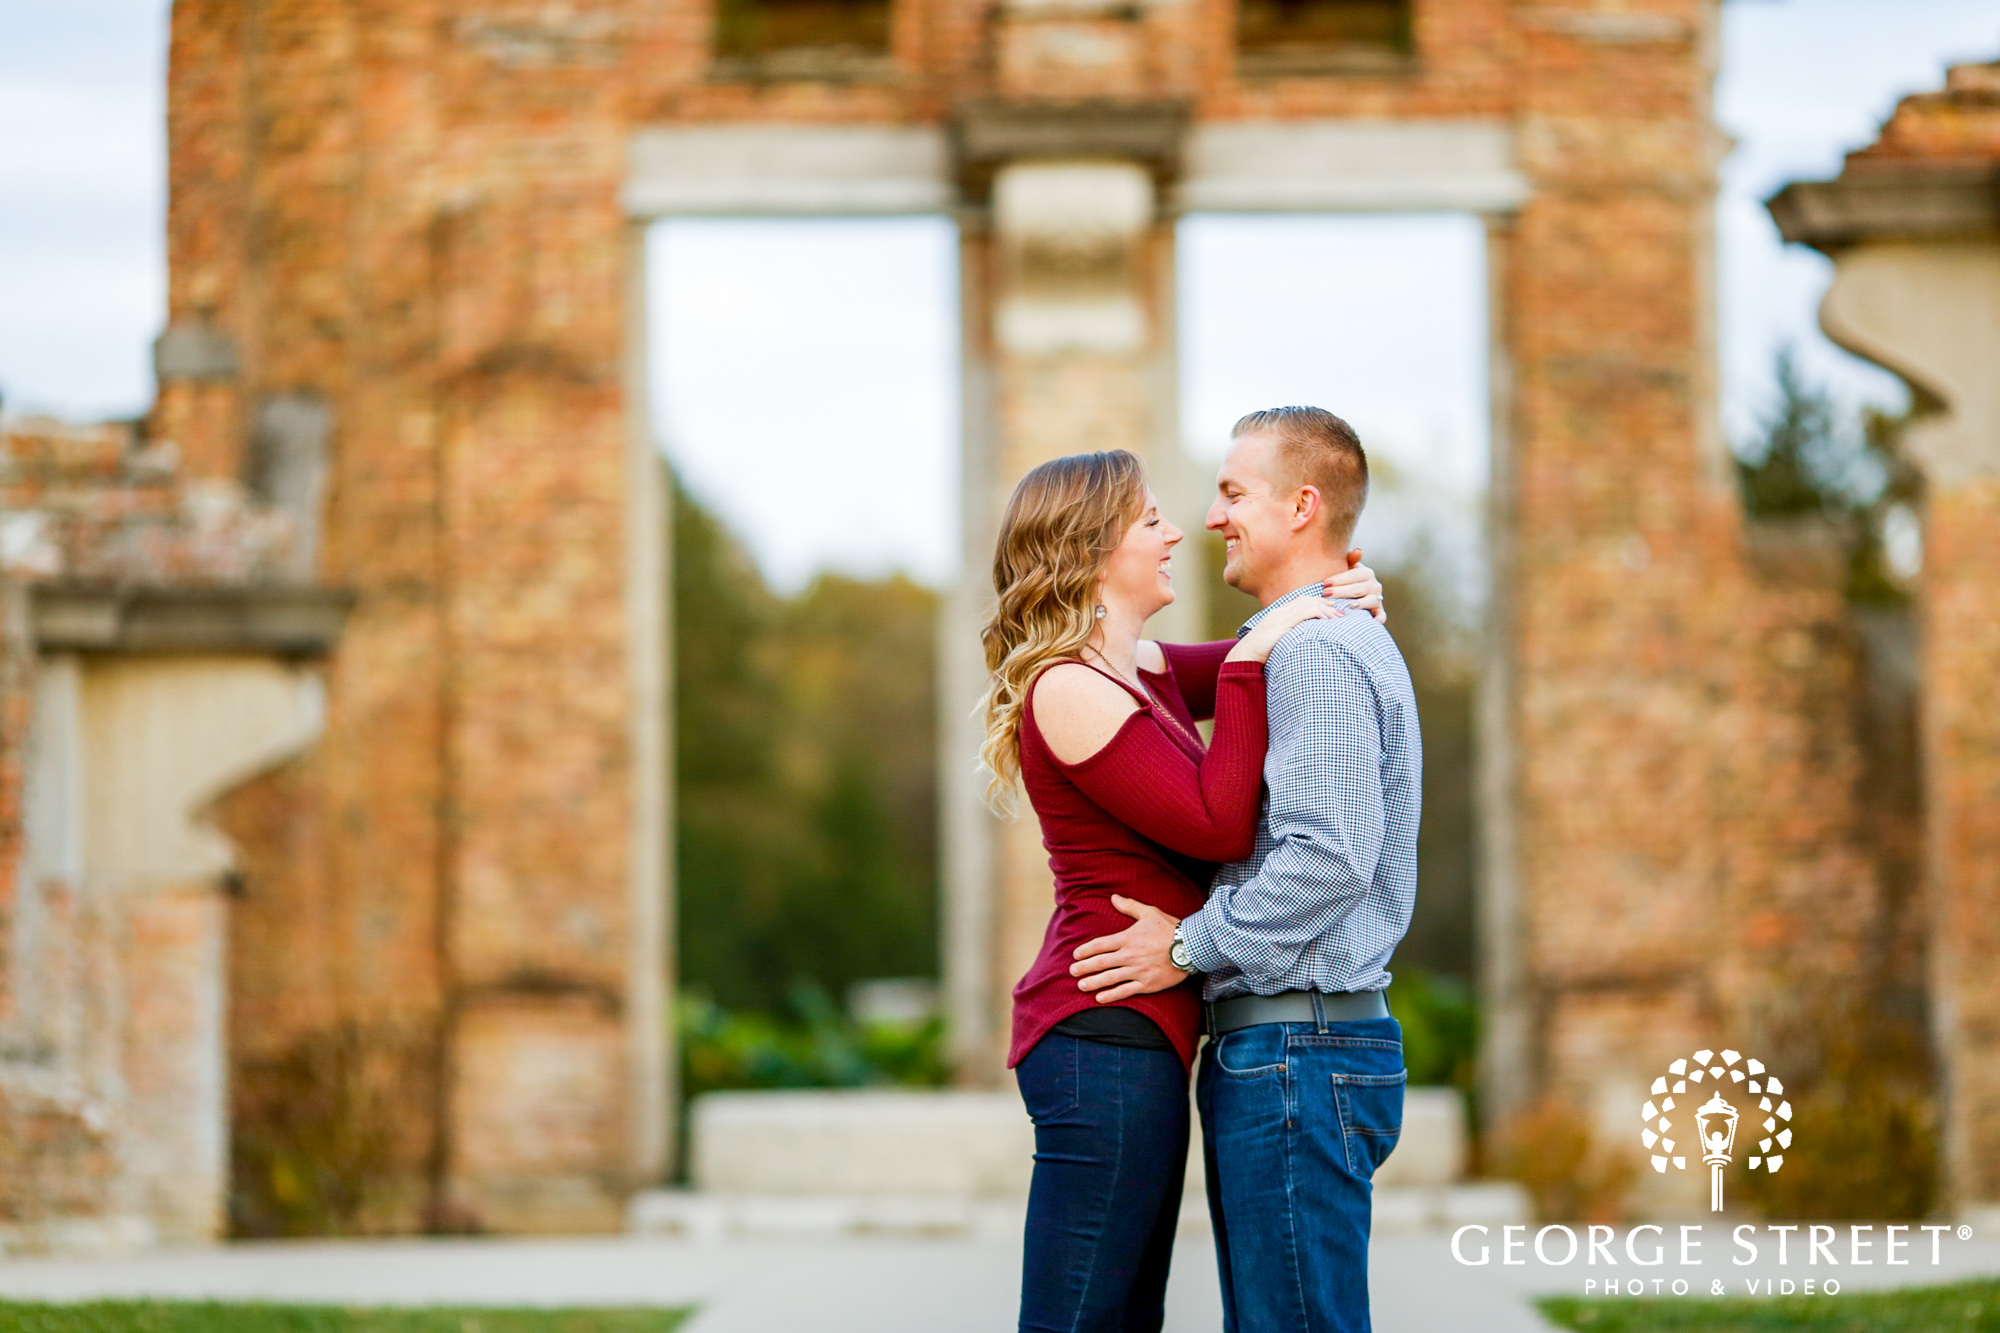 George Street's Top 6 Engagement Session Locations in Indianapolis